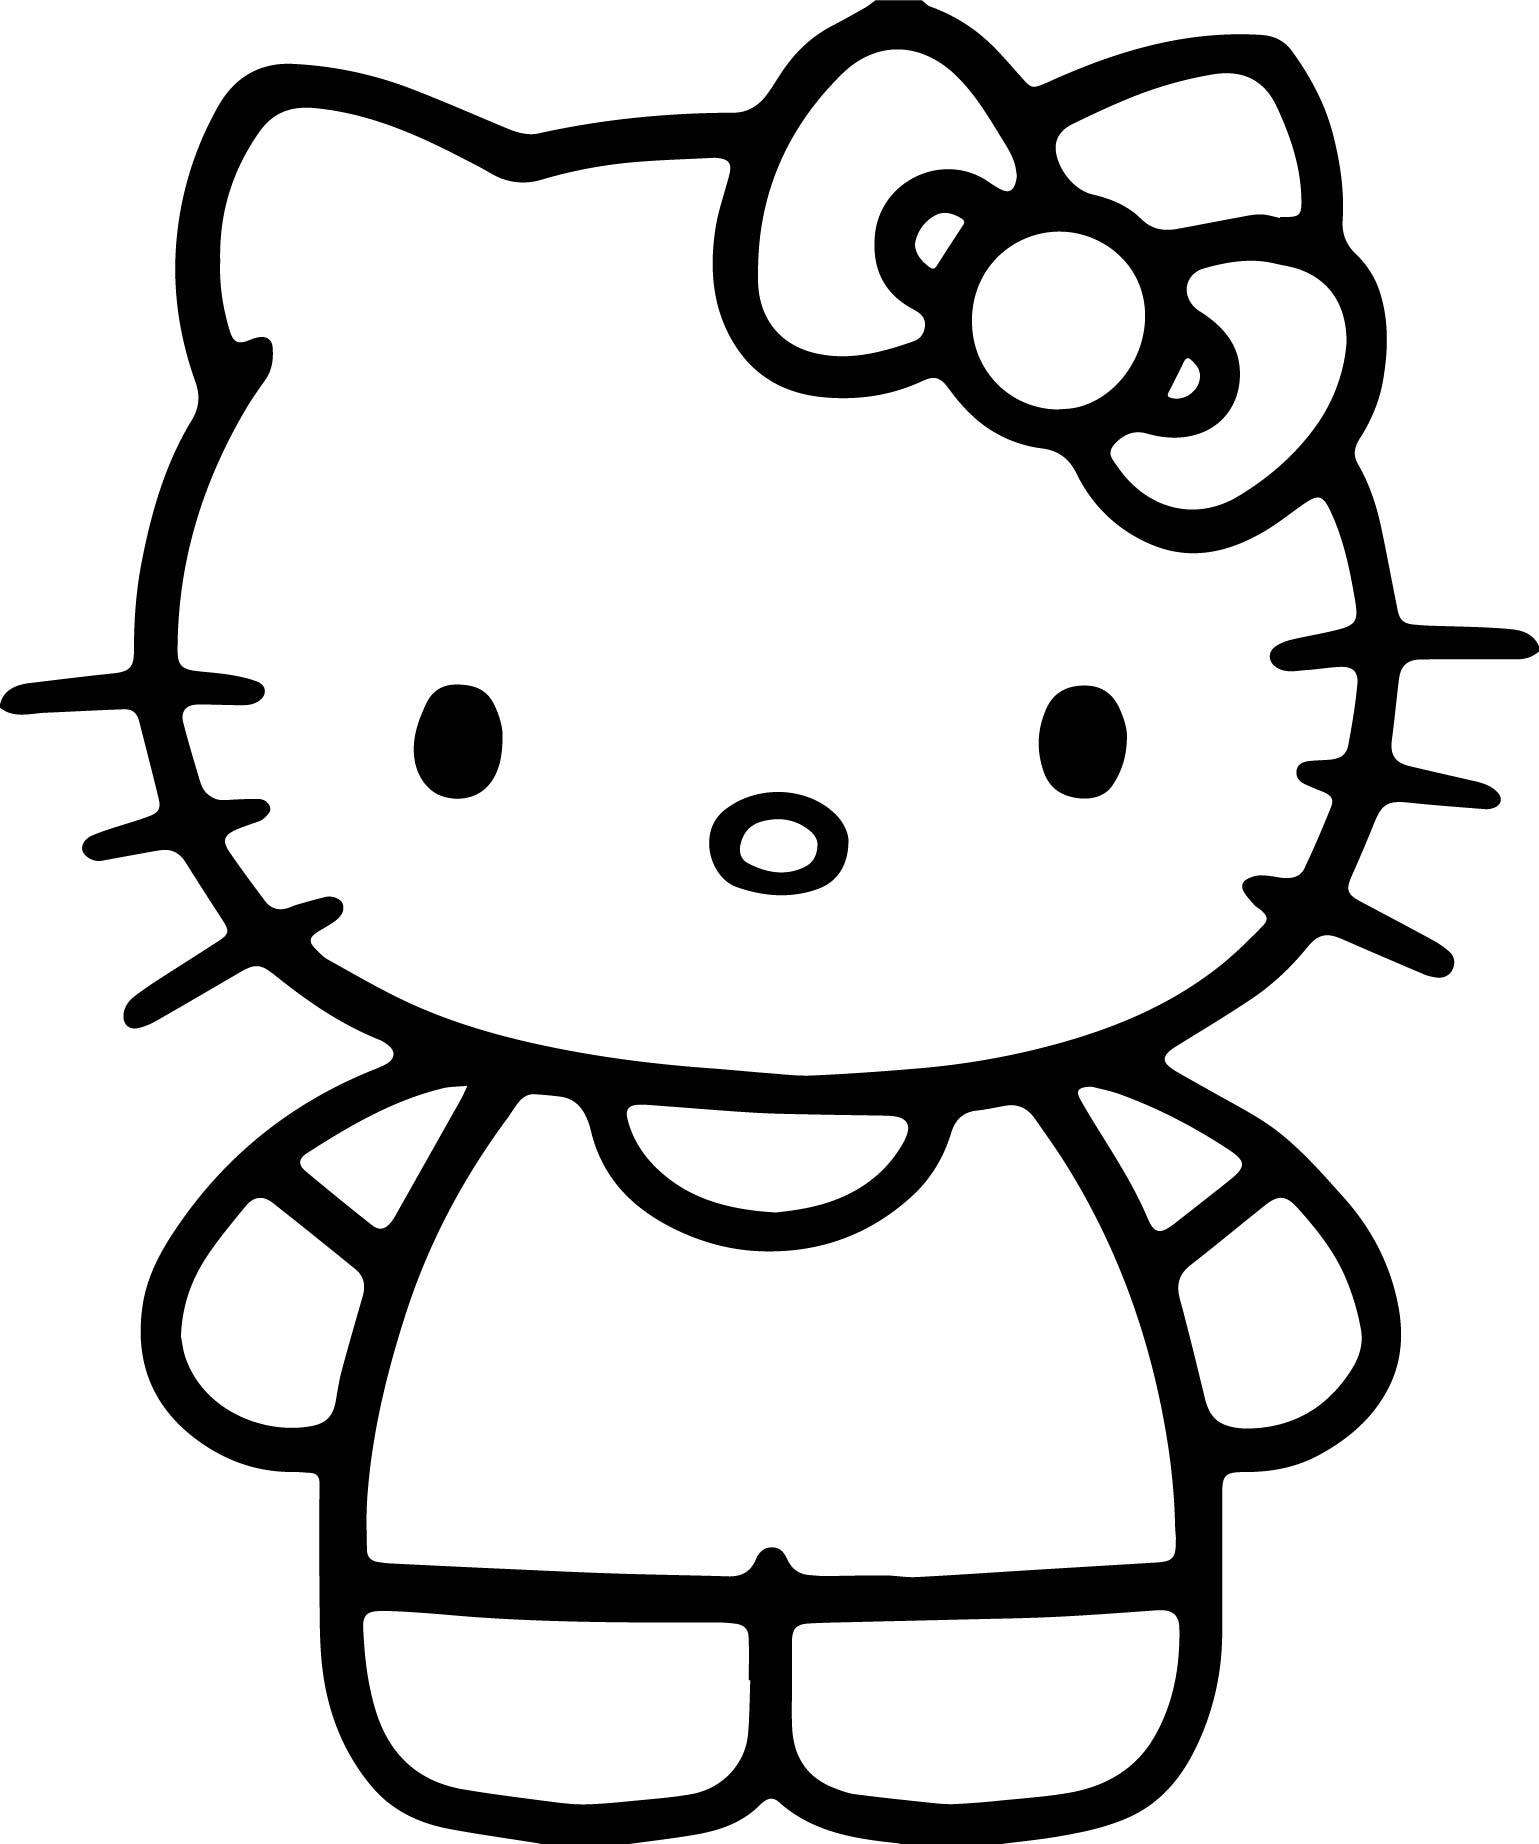 1539x1844 Ideas Simple Coloring Pages For 3 Year Olds On Spectaxmas